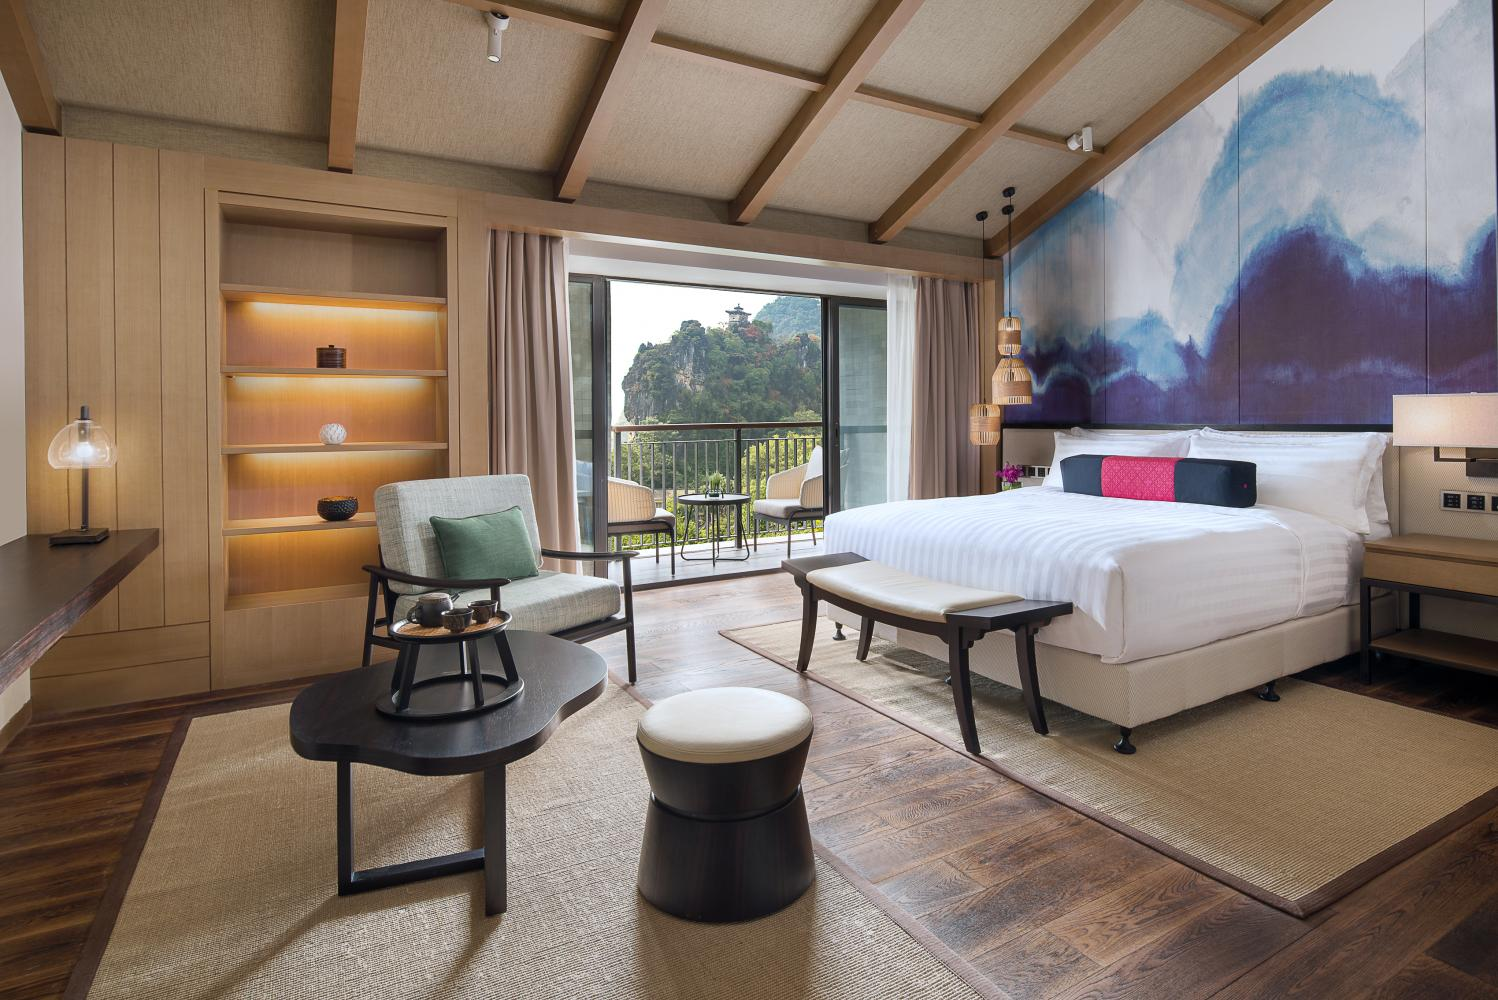 The Amari Yangshuo in China. Occupancy rates were highest during the Golden Week holiday.